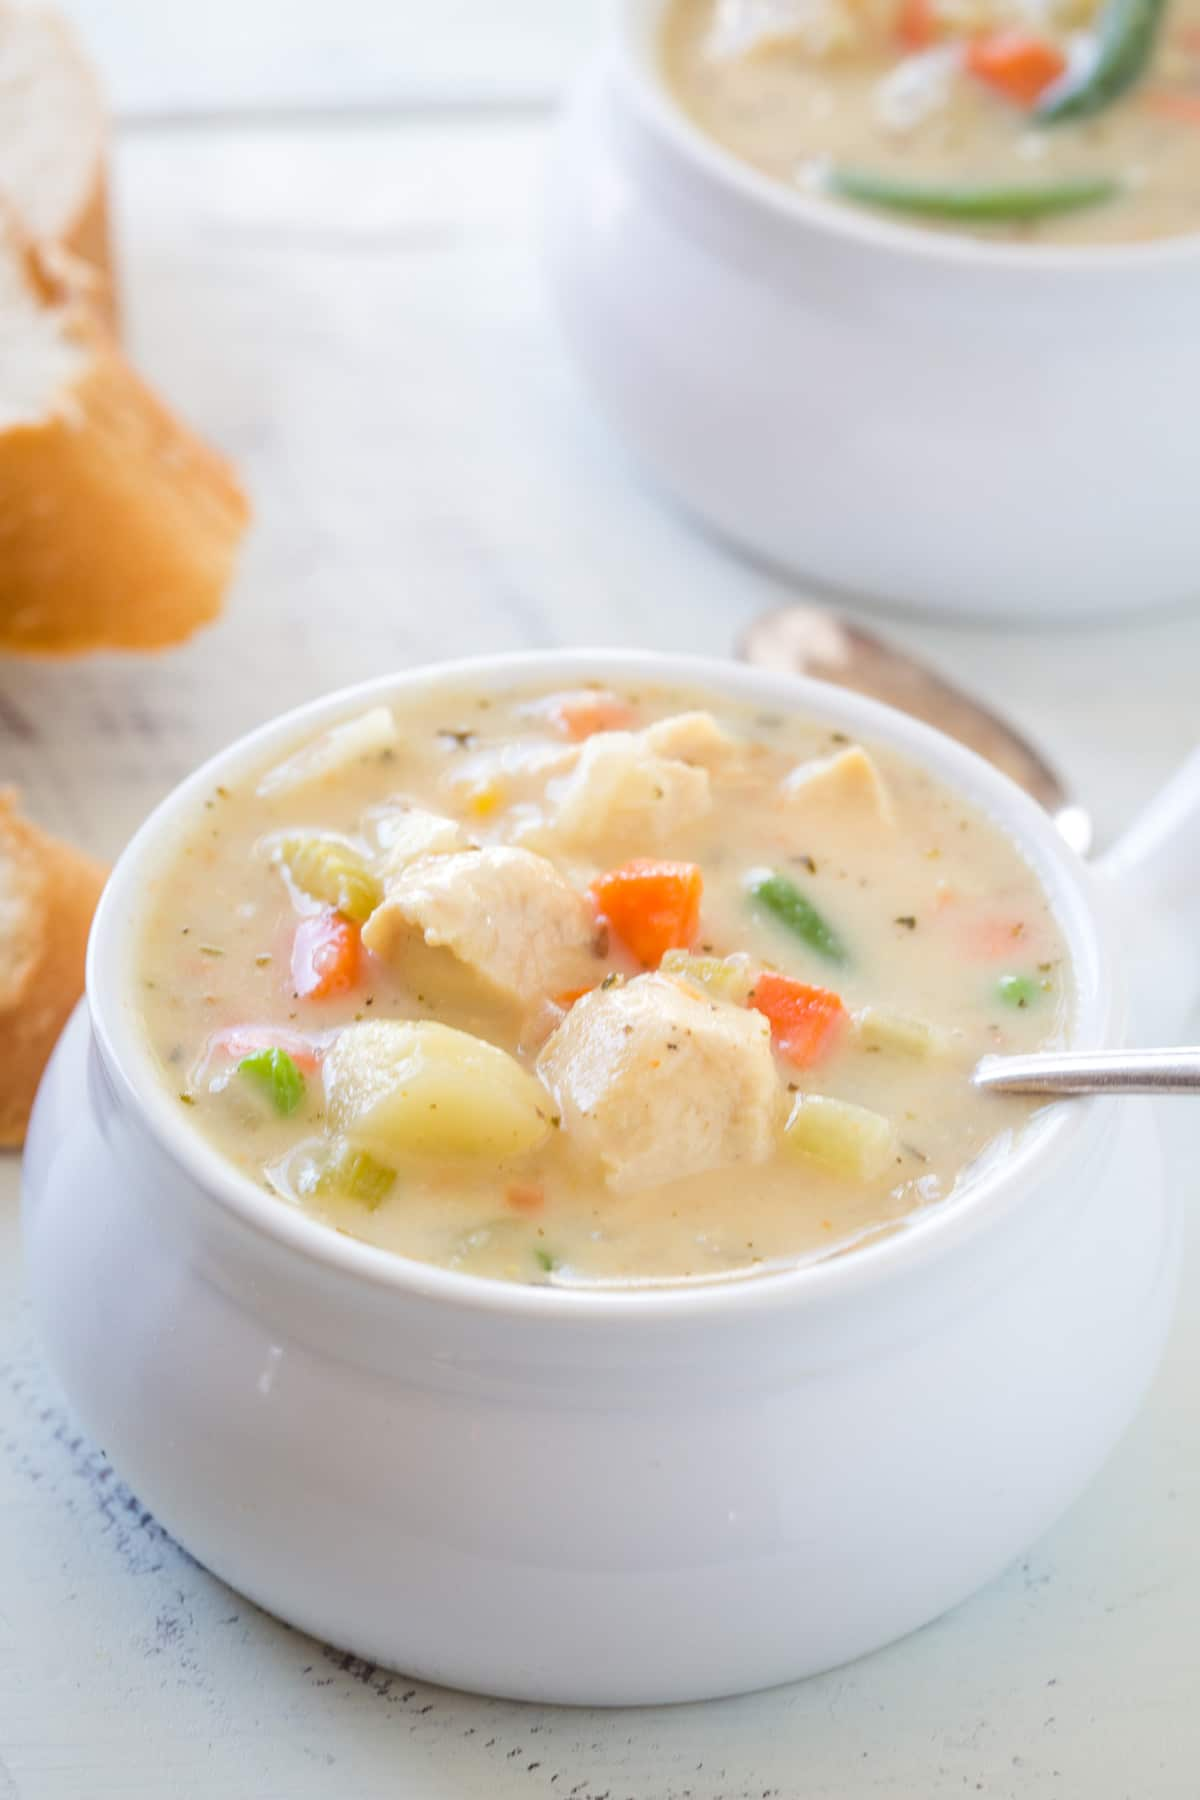 Looking at chicken pot pie soup is a soup bowl with a spoon